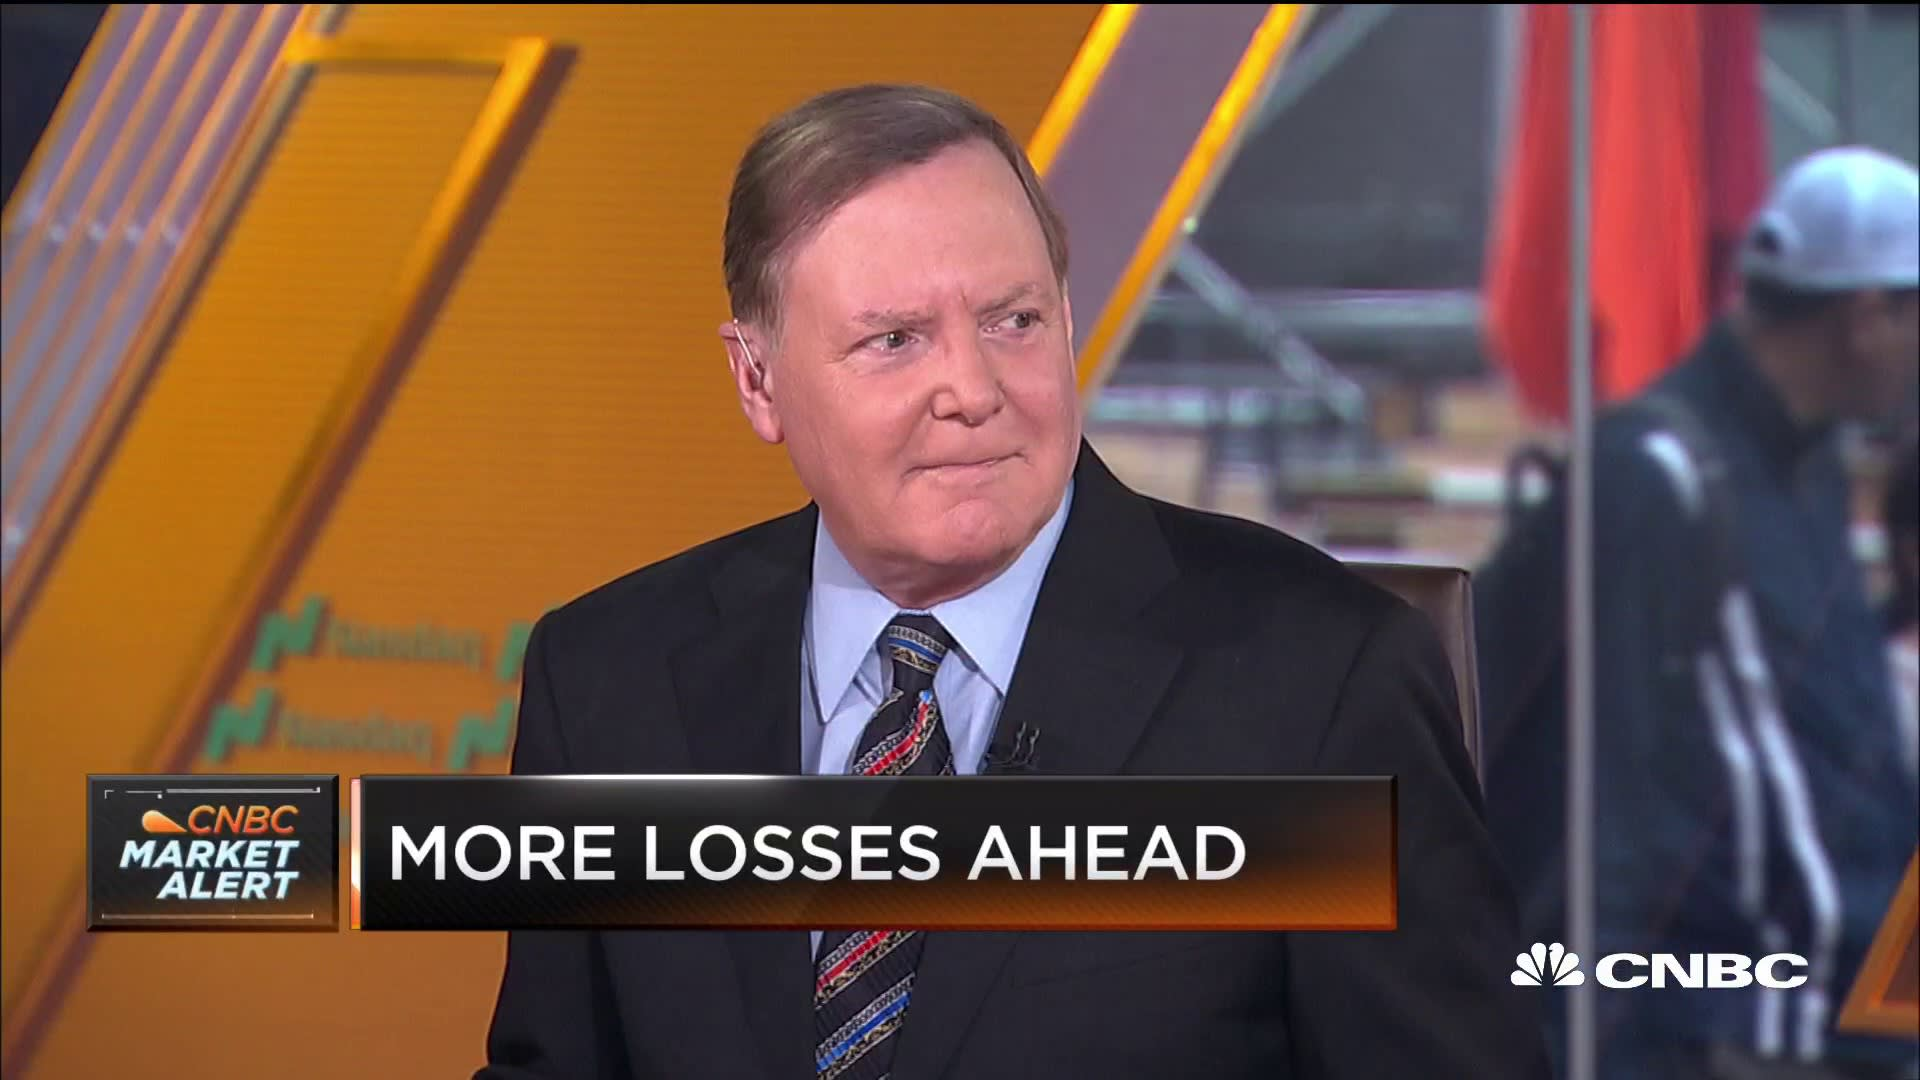 Stocks will rally to new highs no matter what happens with trade, market bull Jeff Saut predicts thumbnail